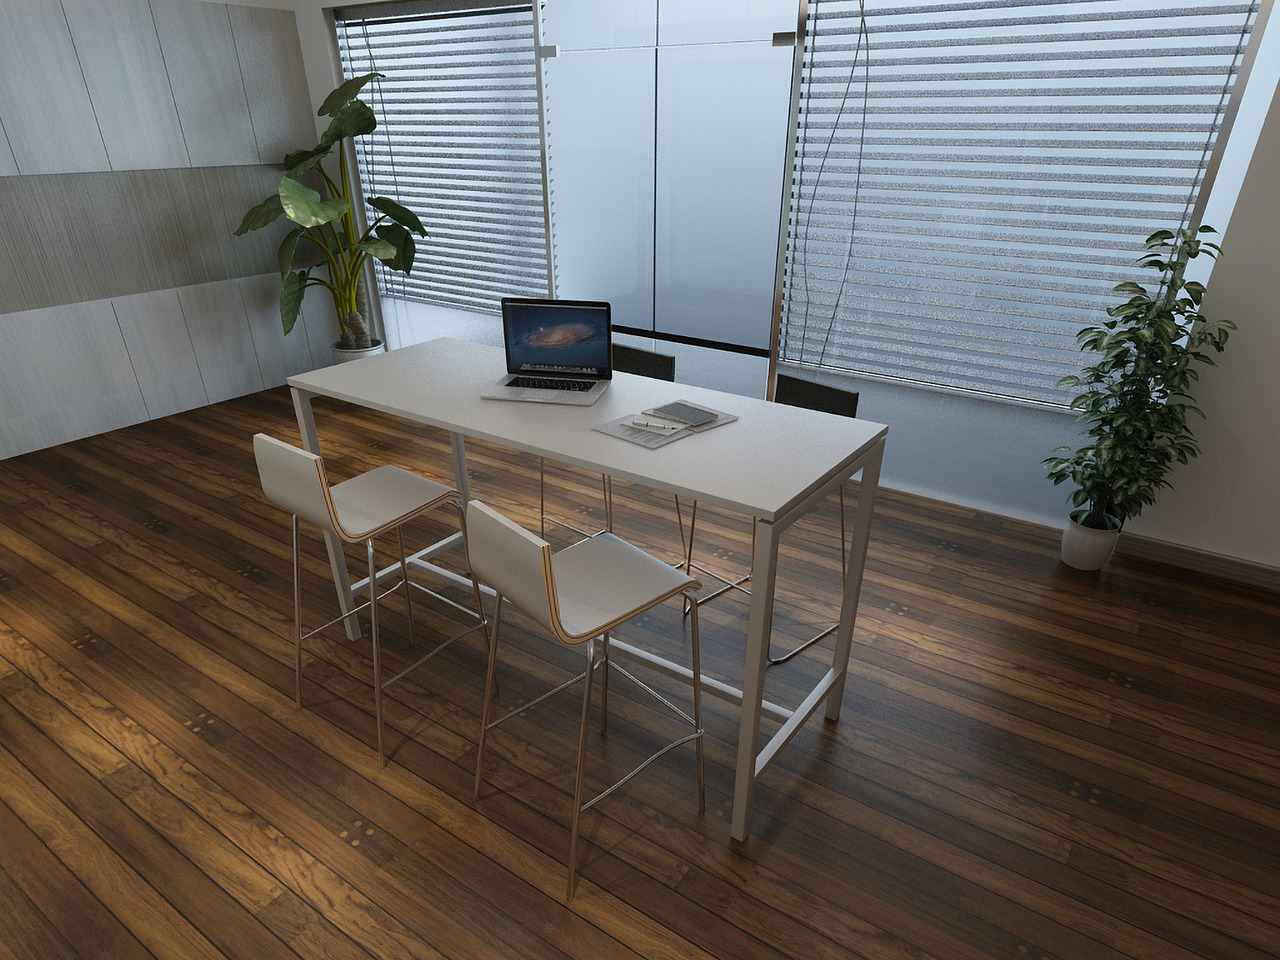 Designer Office Furniture Portfolio Of One Geeky Designer Office Furniture Design For